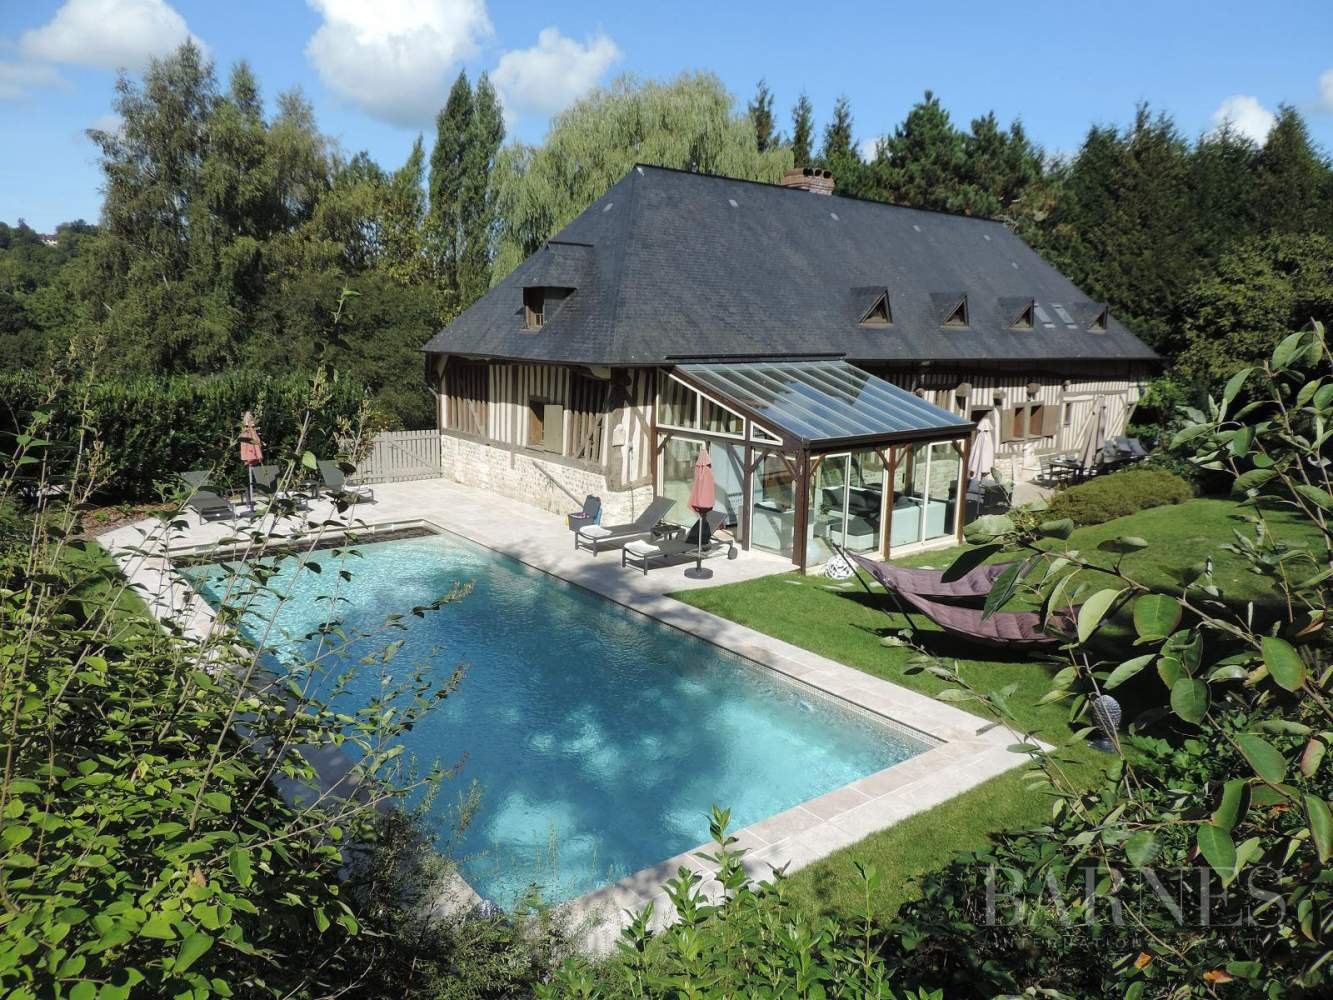 Near Deauville Property with character - 5 bedrooms - heated pool, tennis court, 2.47-acre landscaped park picture 3